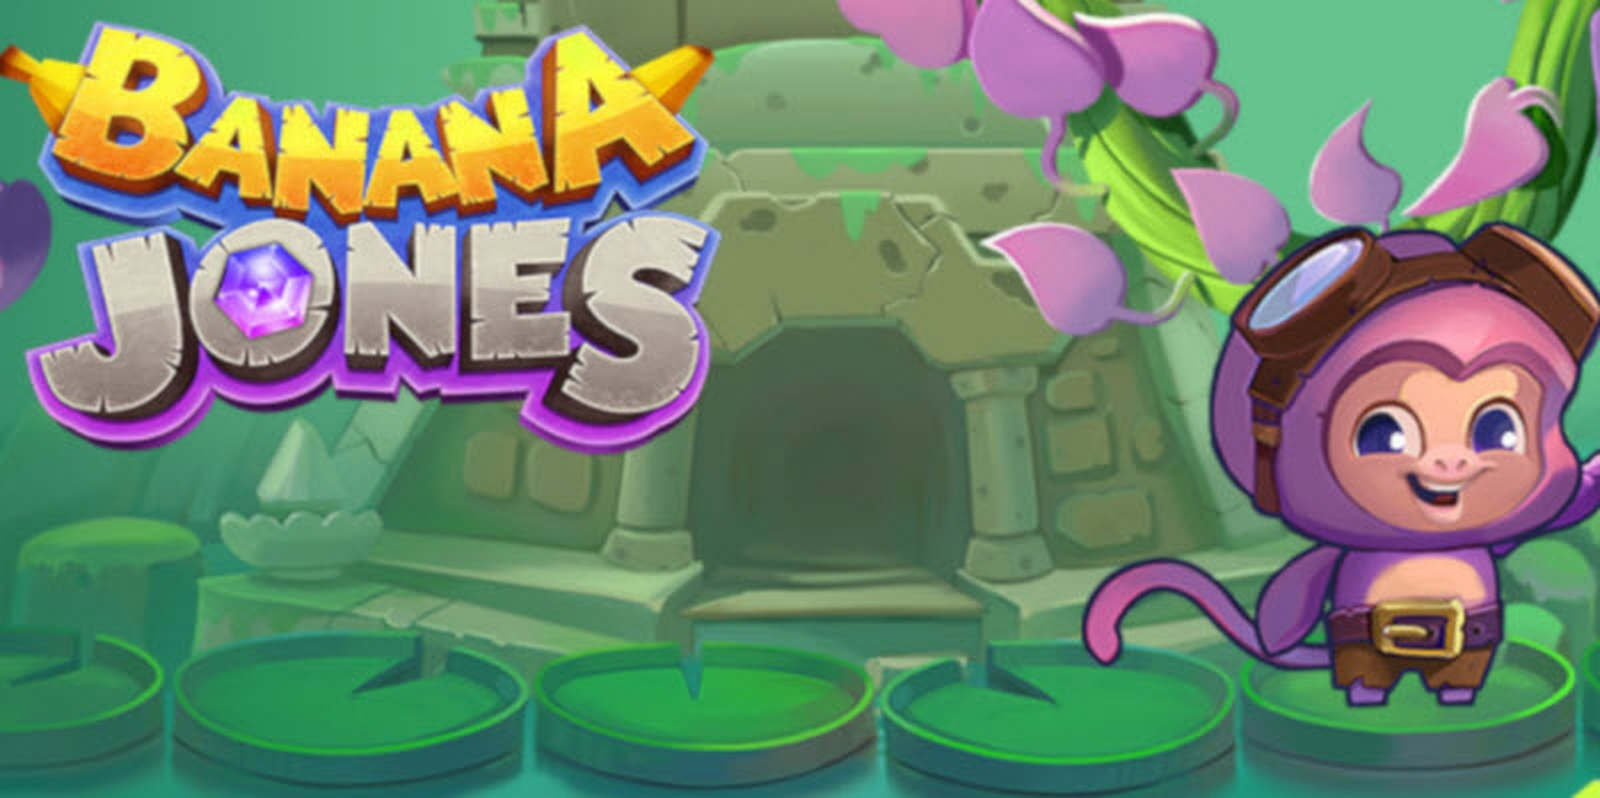 The Banana Jones Online Slot Demo Game by Real Time Gaming